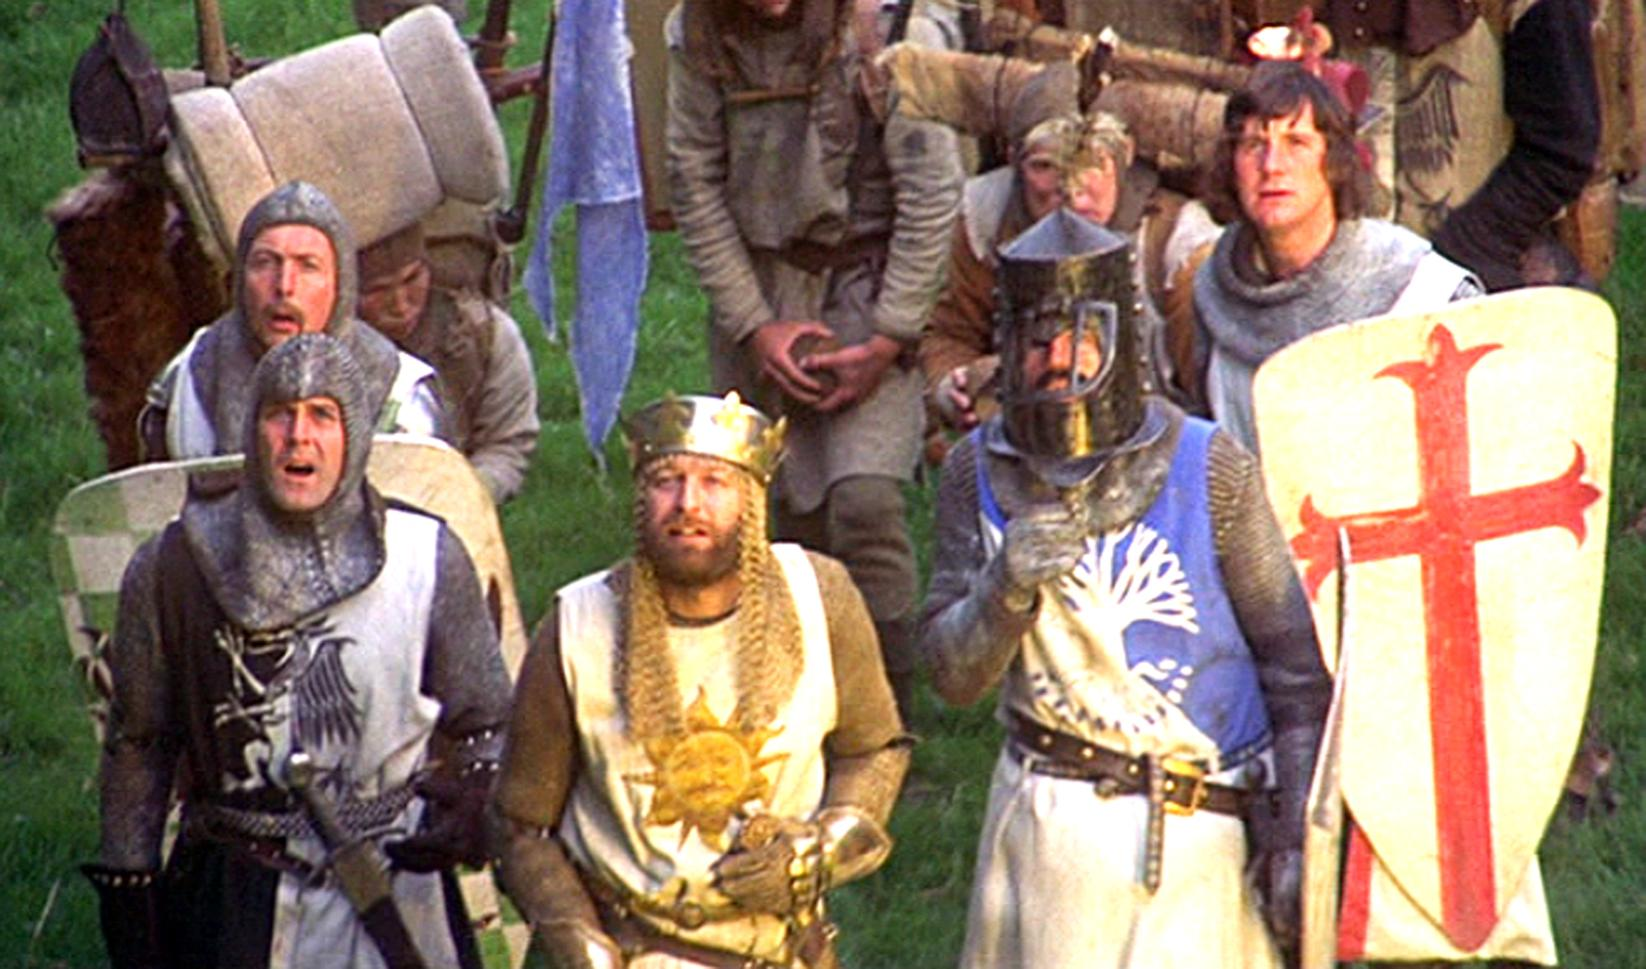 1646x969px 940.87 KB Monty Python And The Holy Grail